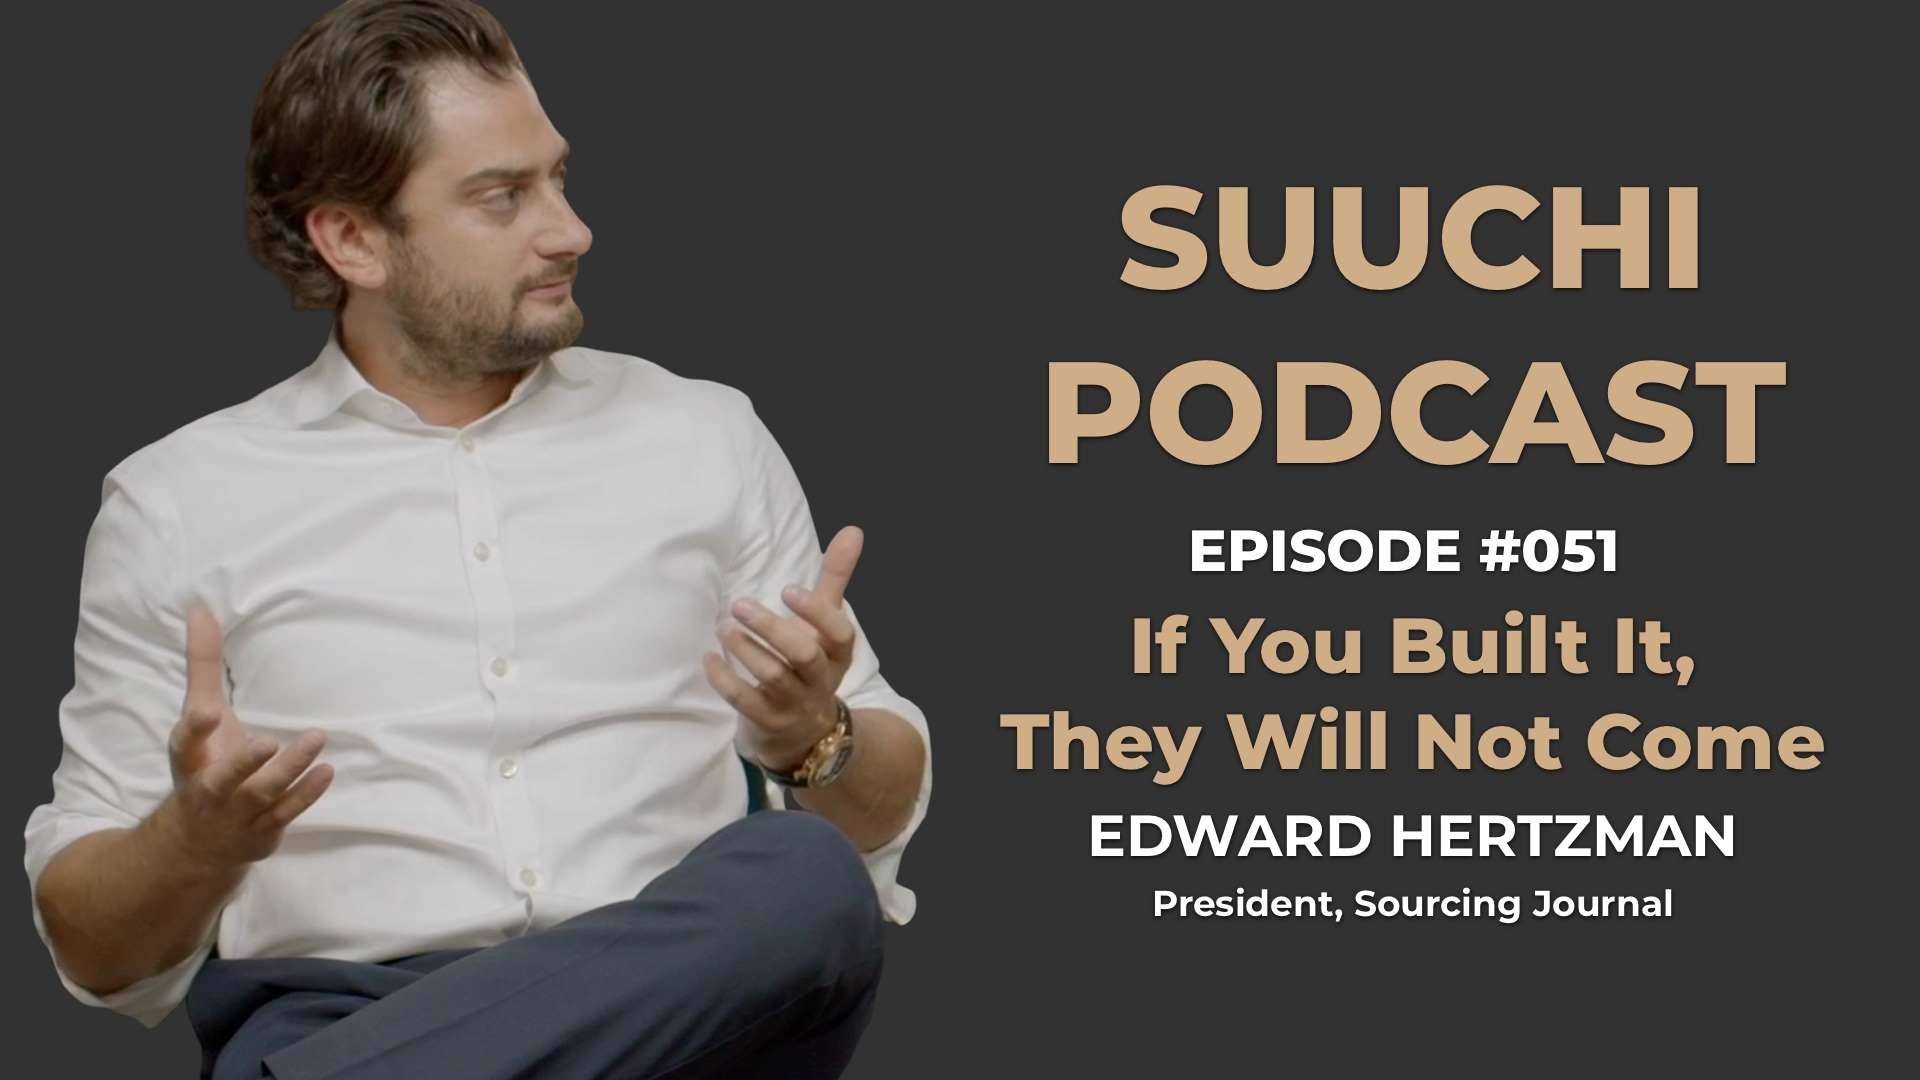 Suuchi Podcast #51: If You Build It, They Will Not Come - Edward Hertzman